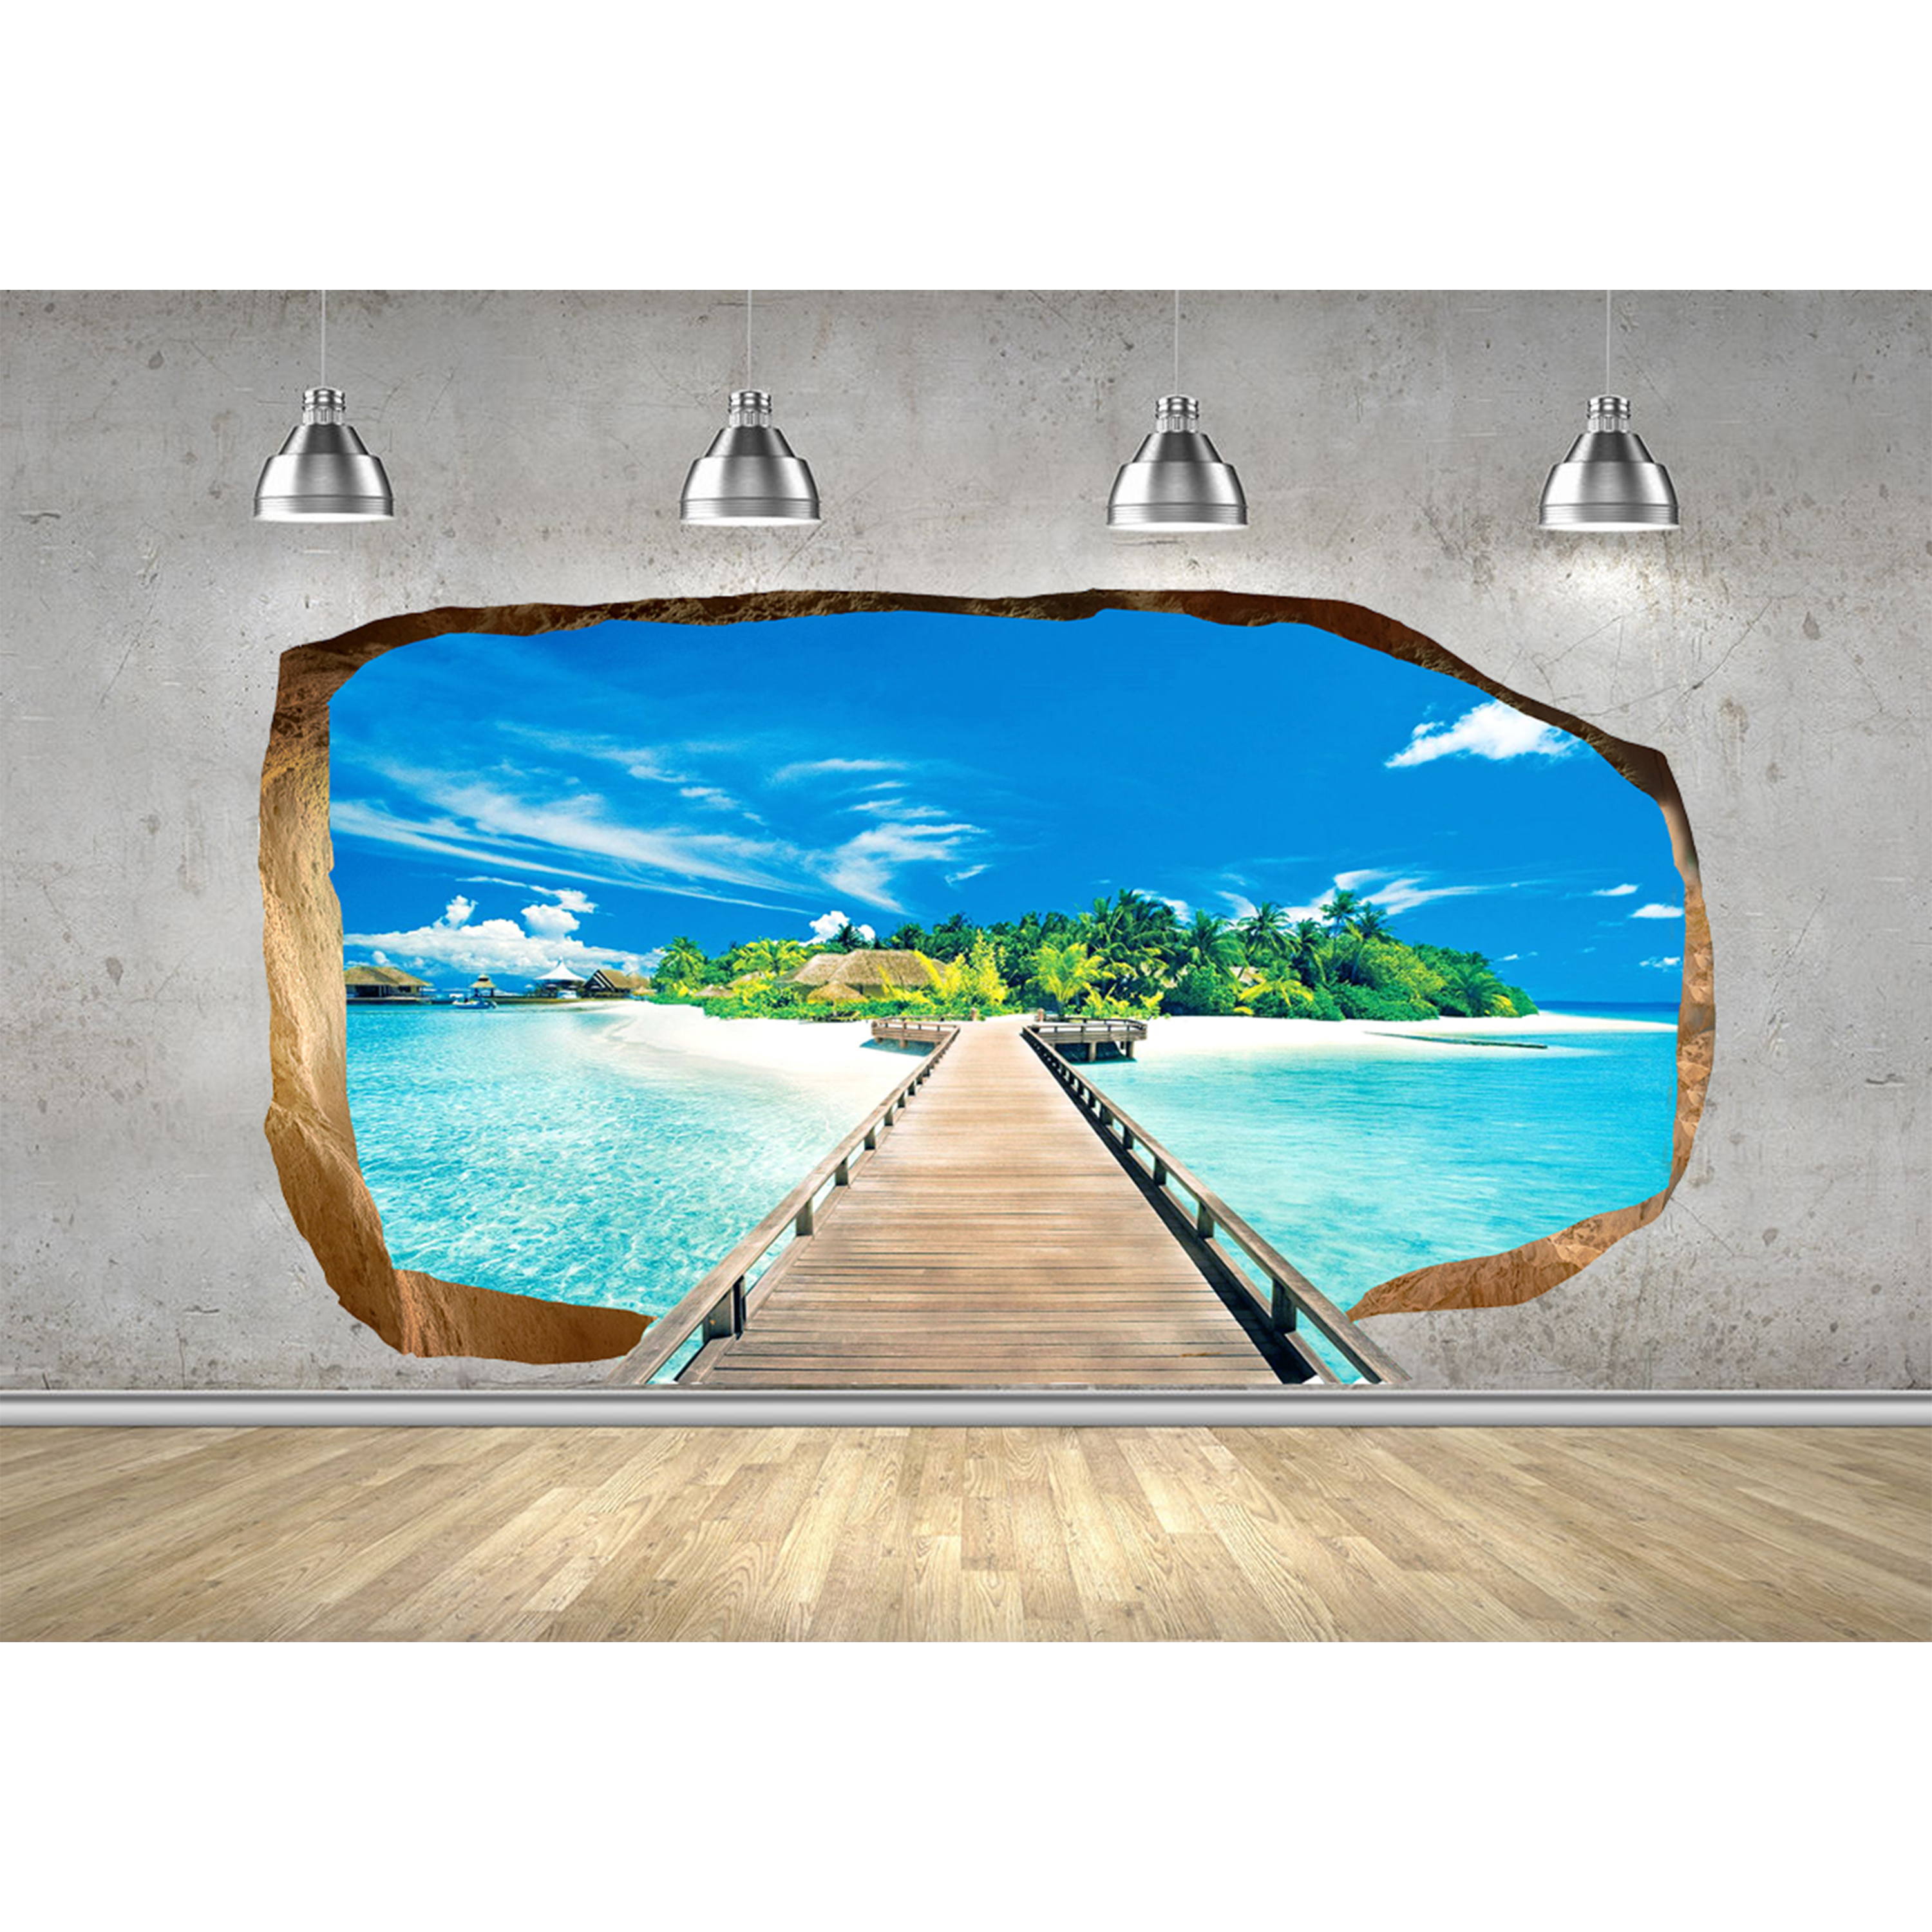 Startonight 3D Mural Wall Art Photo Decor Bridge for Island Amazing Dual View Surprise Wall Mural Wallpaper for Bedroom Beach Wall Paper Gift Large 47.24 '' By 86.61 ''